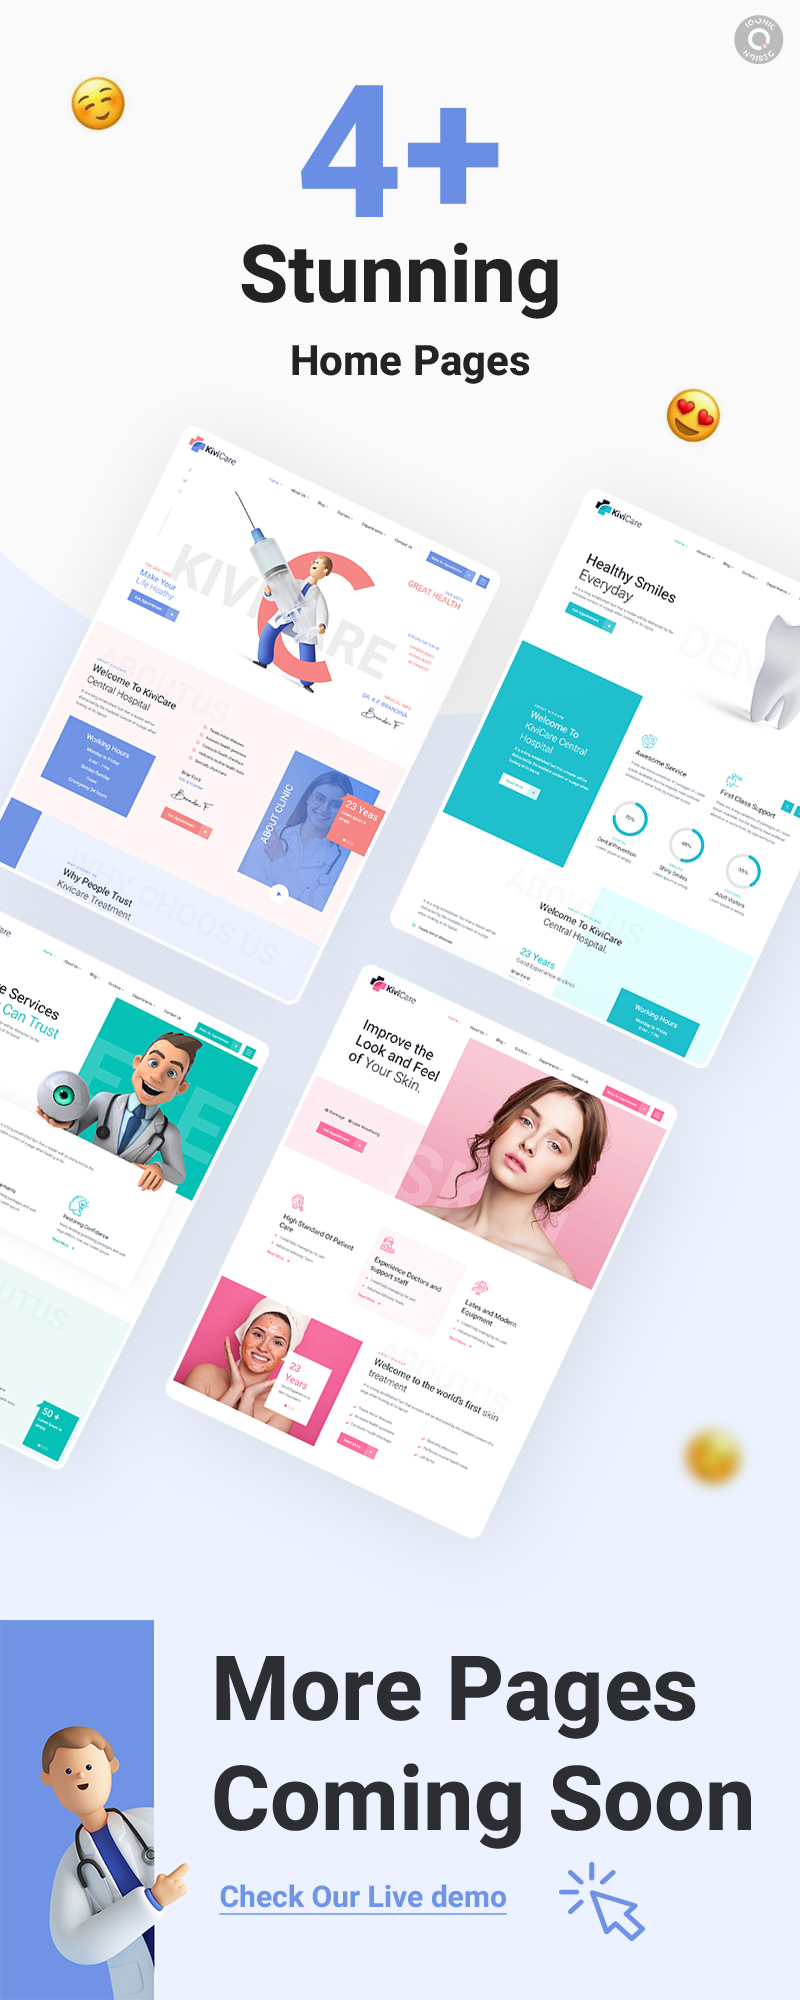 Best Medical and Health WordPress Theme   KiviCare   Iqonic Design medical clinic and patient management wordpress theme KiviCare 3